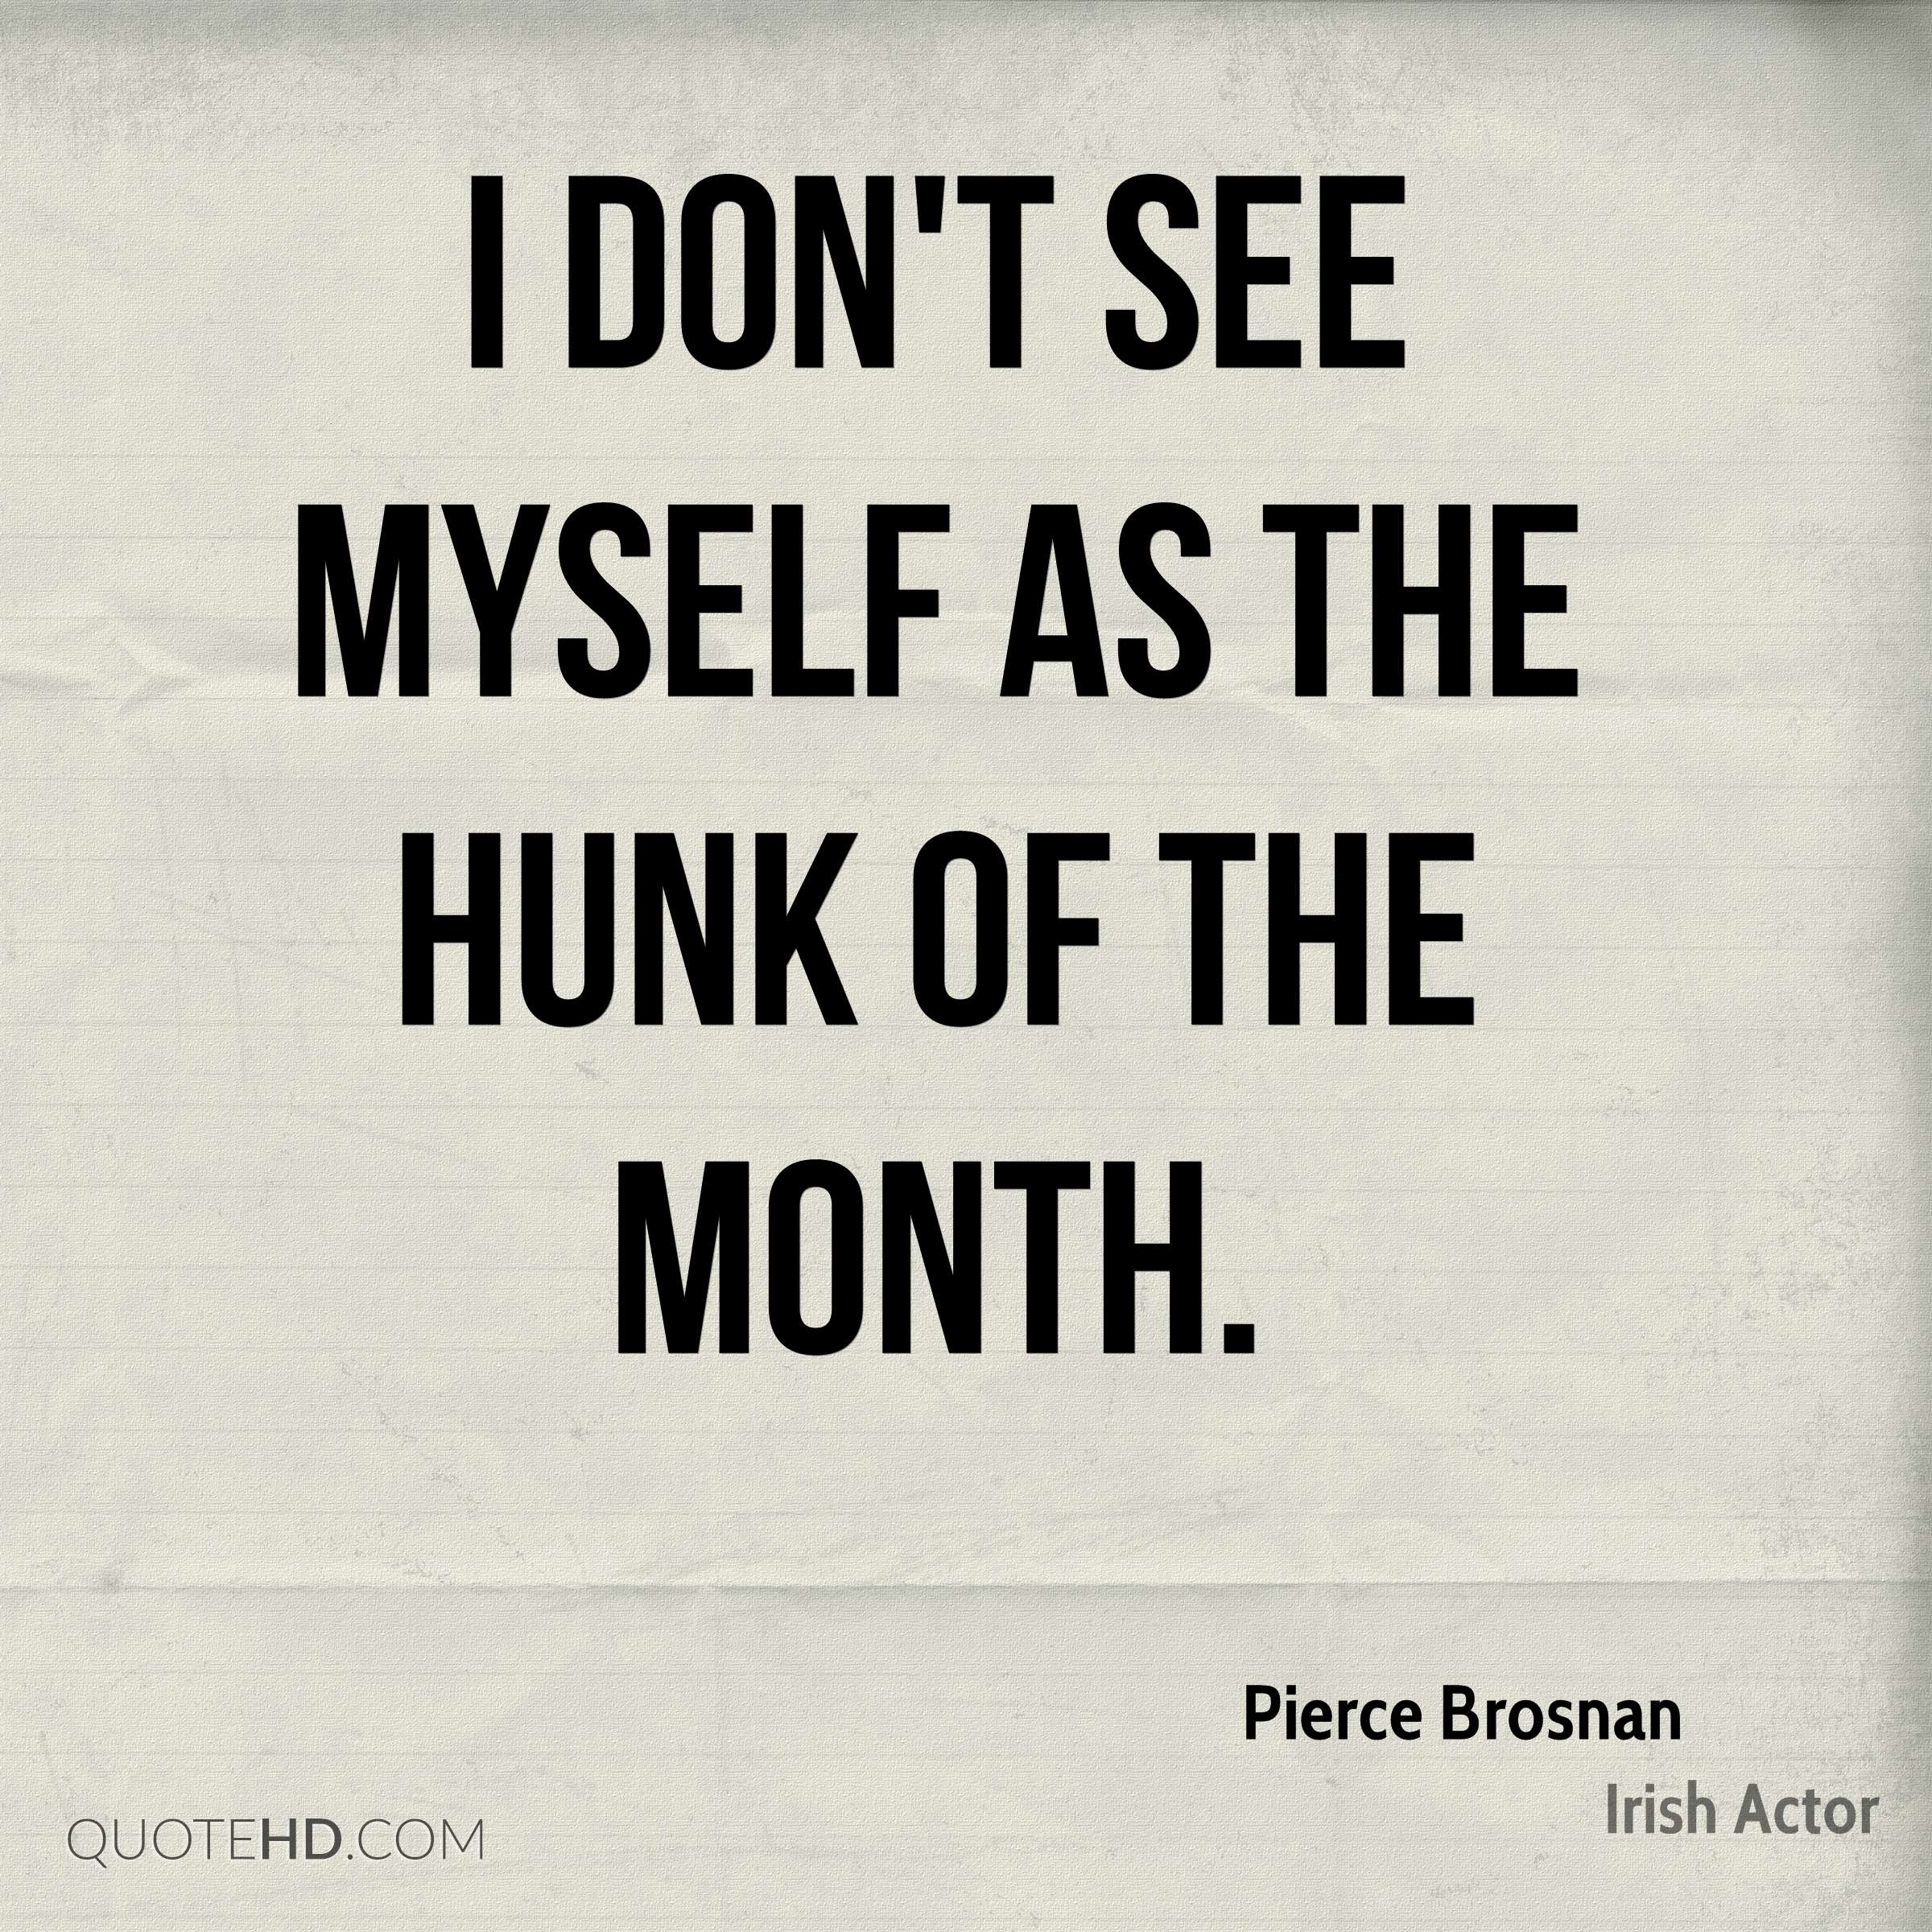 I don't see myself as the Hunk of the Month.